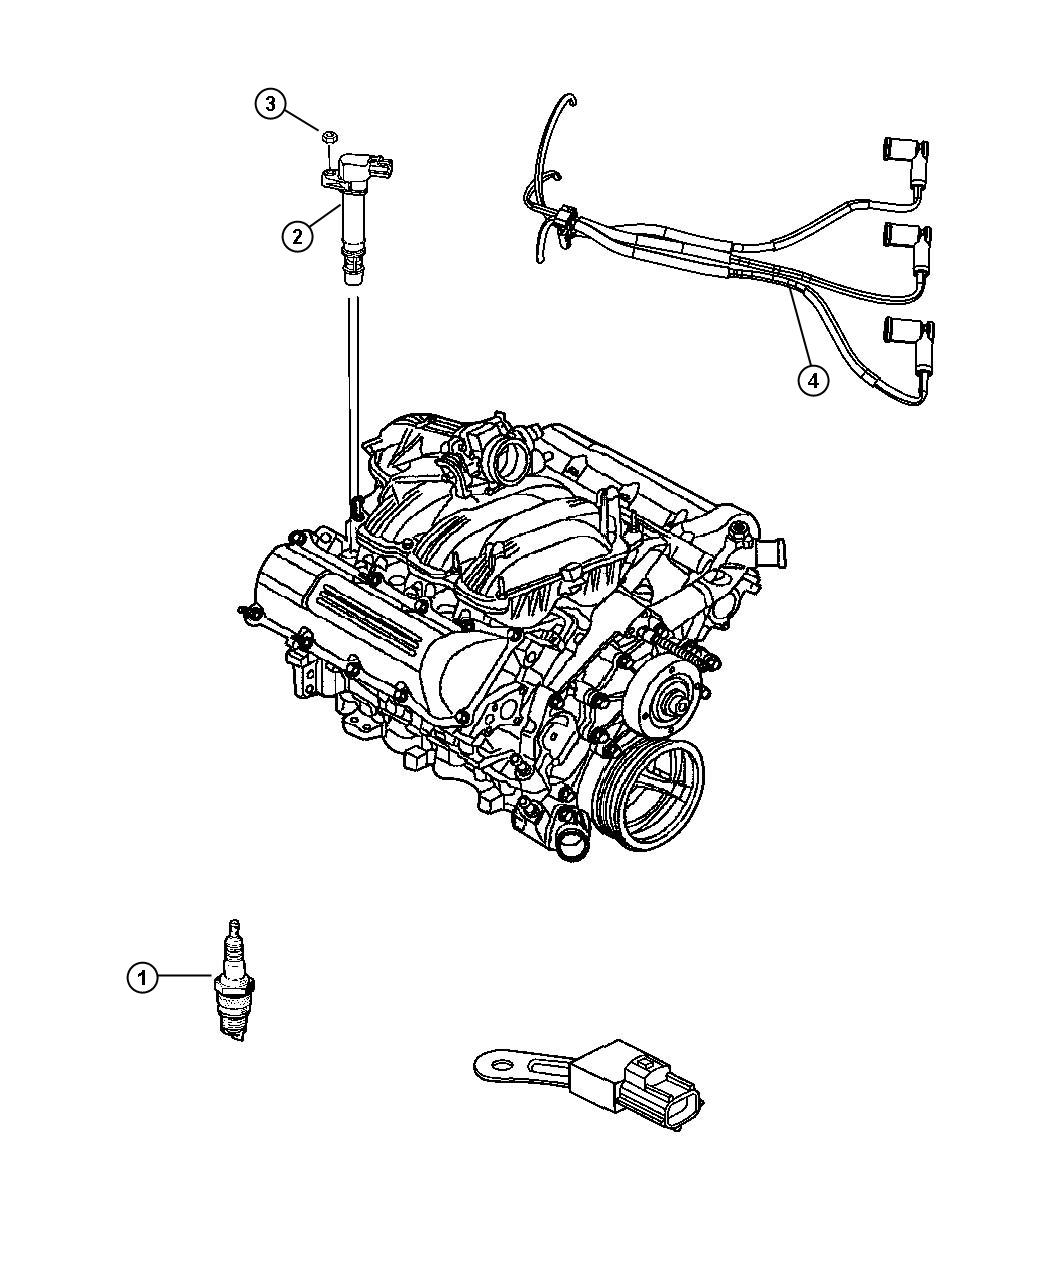 Spark Plugs, Ignition Wires and Coils